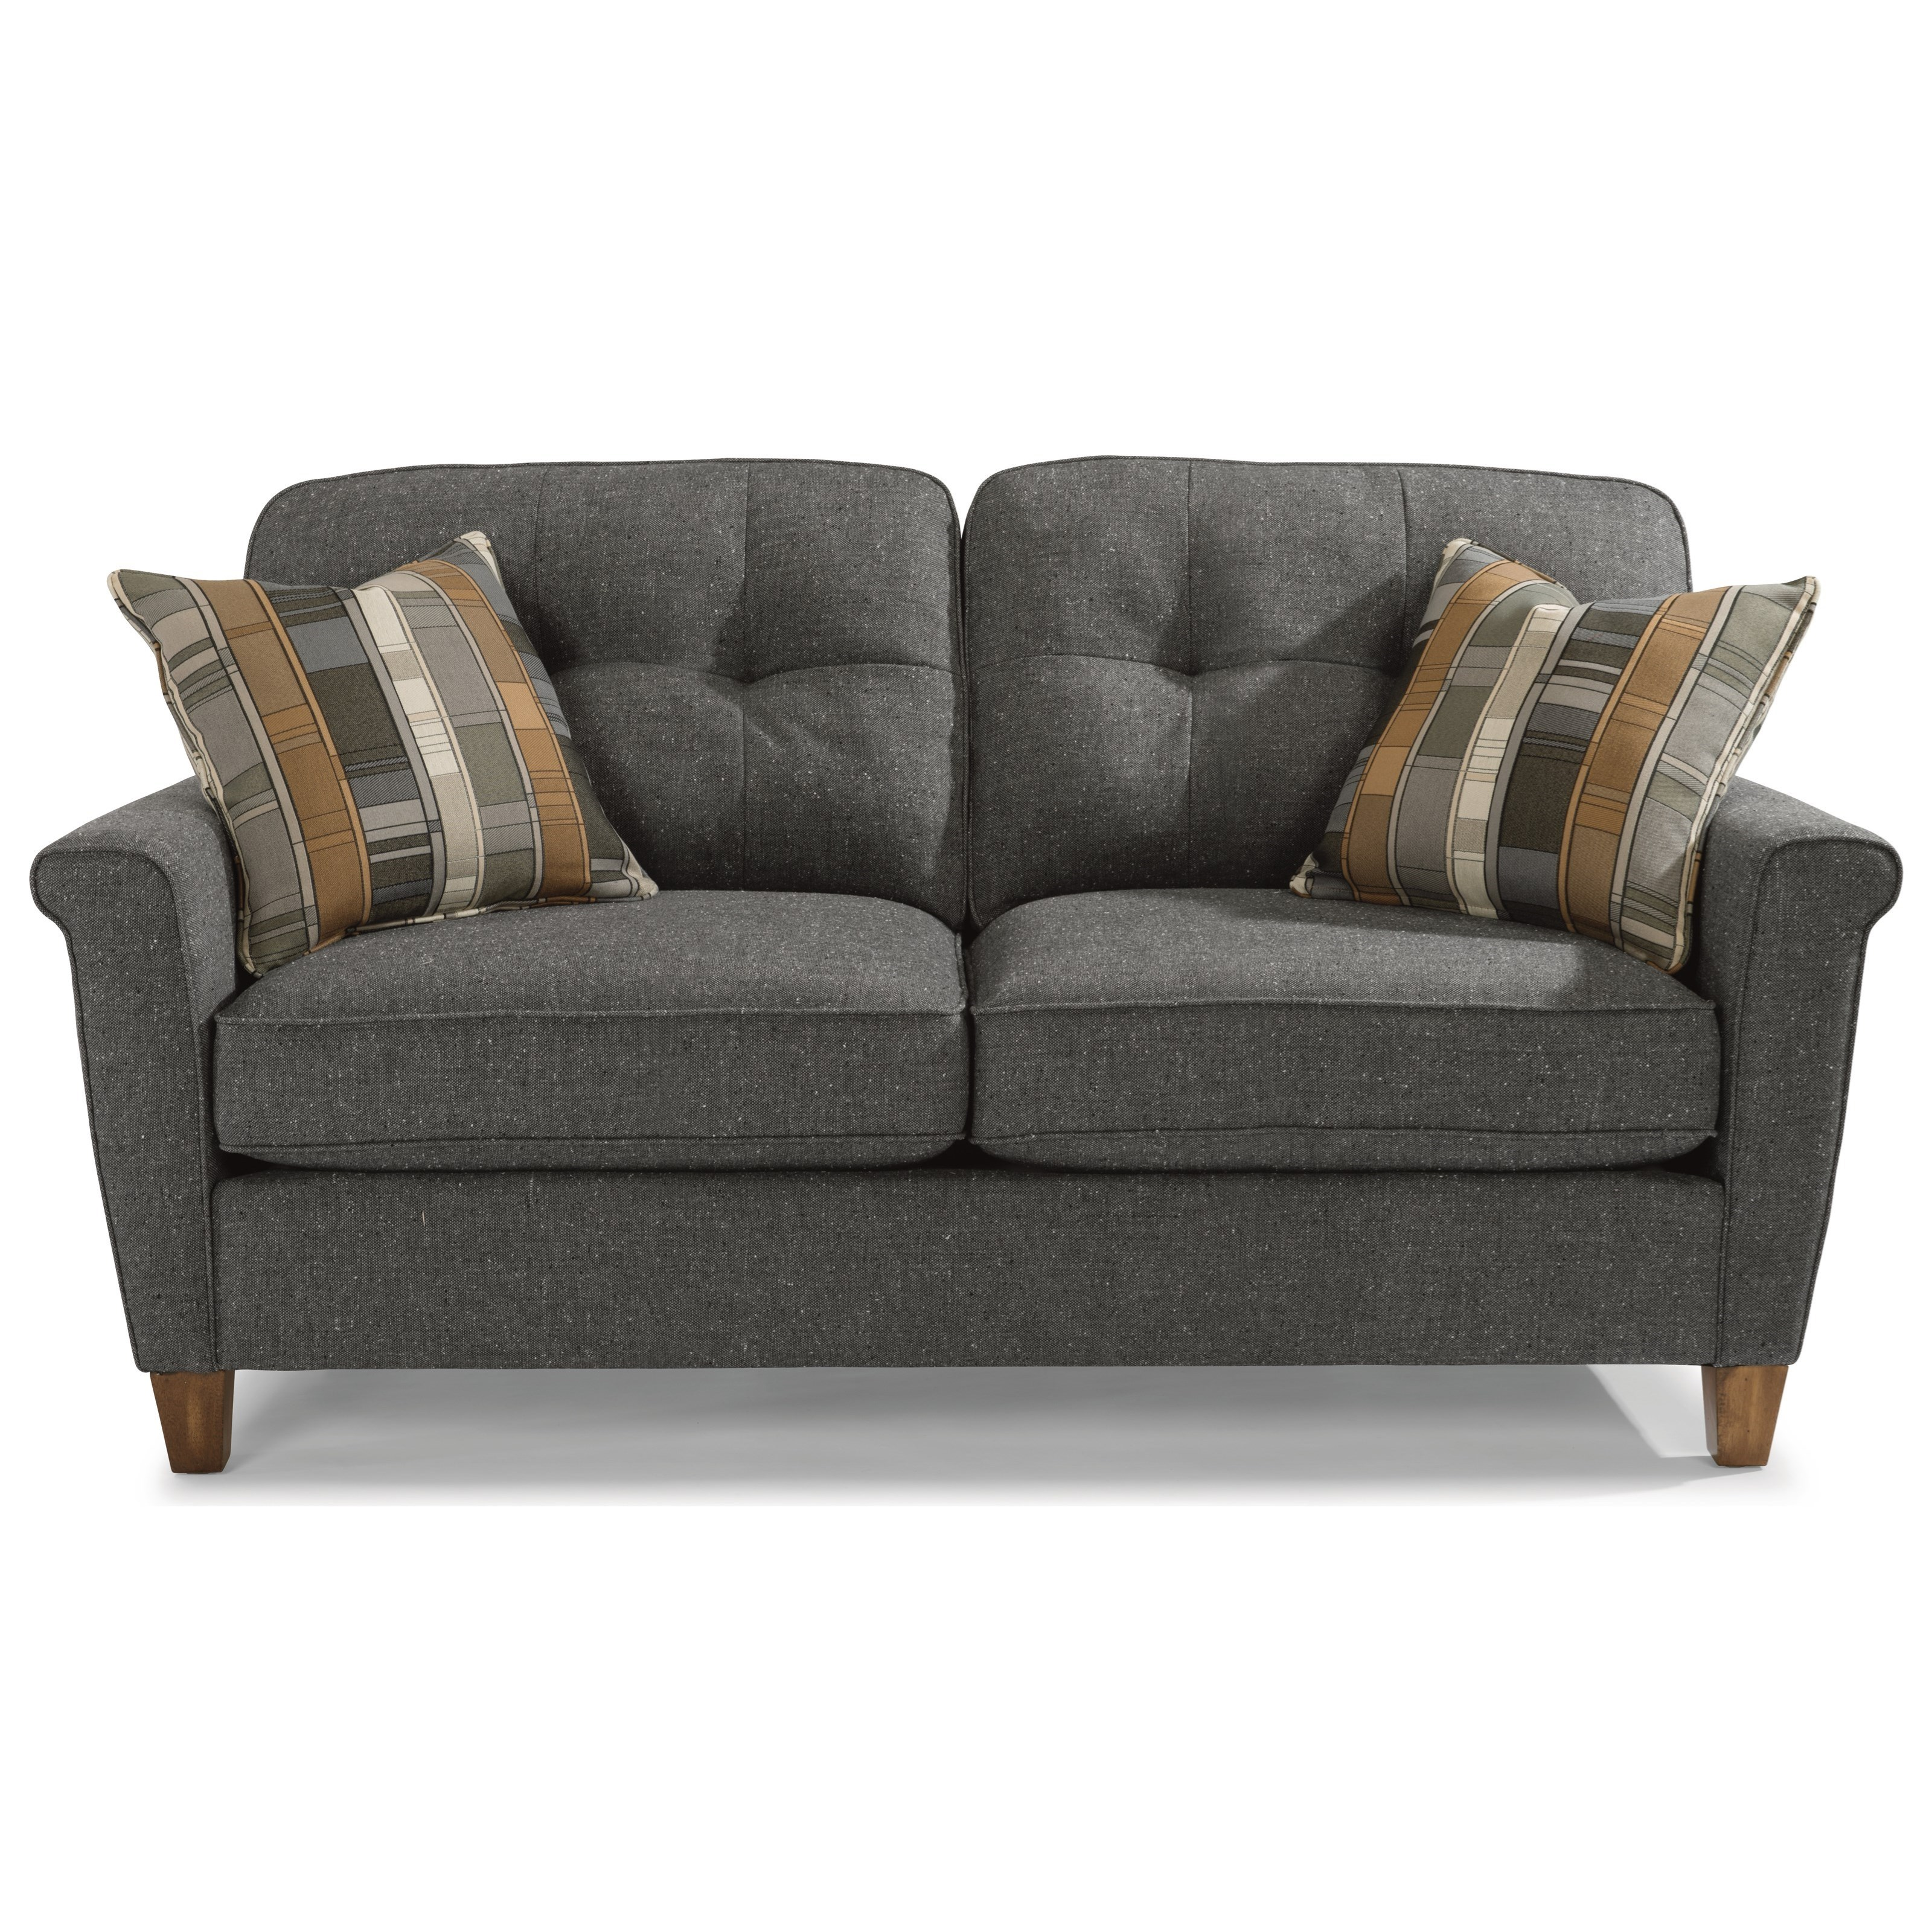 Flexsteel Elenore Loveseat  - Item Number: 5112-20